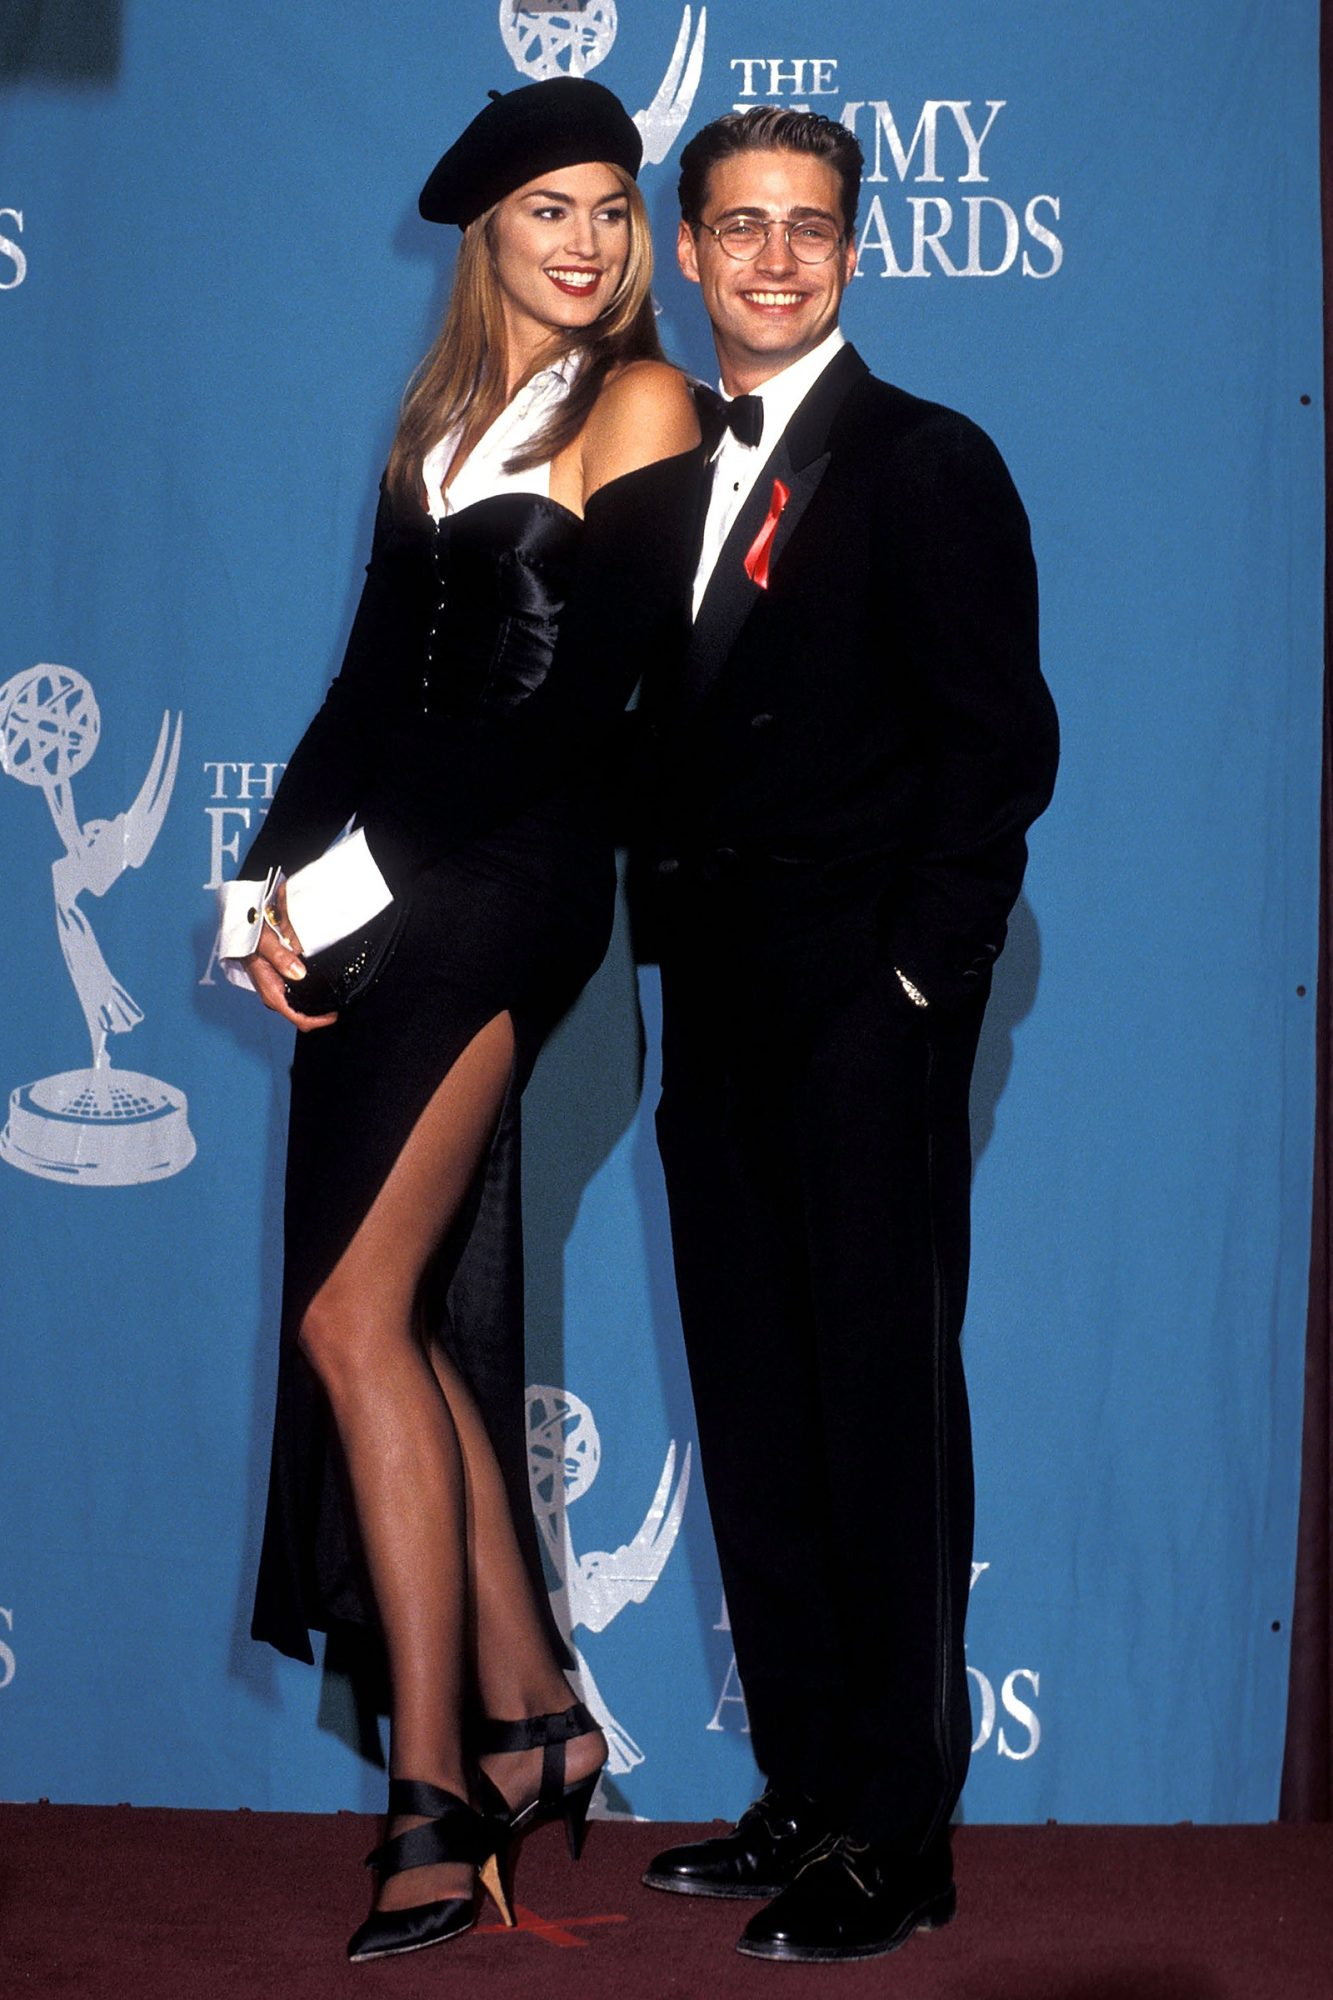 Cindy Crawford and actor Jason Priestley attend the 44th Annual Primetime Emmy Awards on August 30, 1992 at Pasadena Civic Auditorium in Pasadena